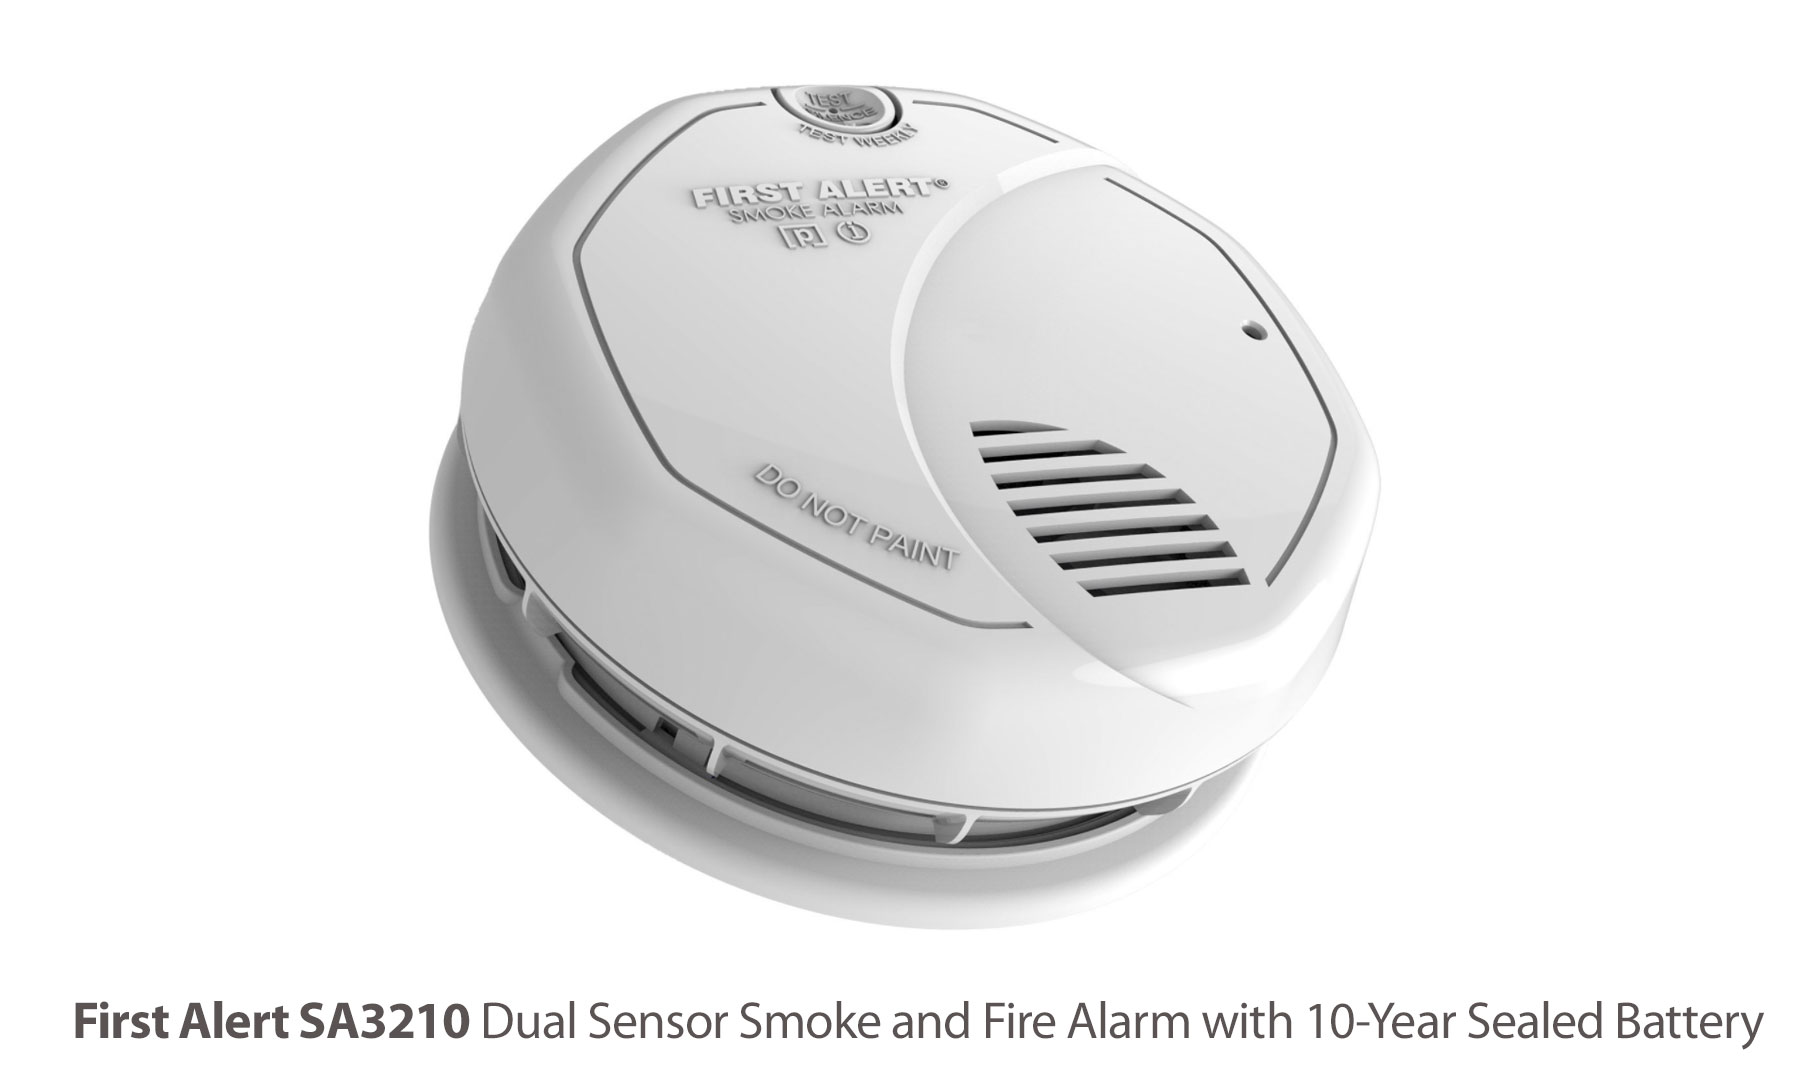 a combination of smoke and fire detector units you might take a look at the first alert sa320cn or the highly rated first alert sa3210 dual sensor with - First Alert Smoke Detector